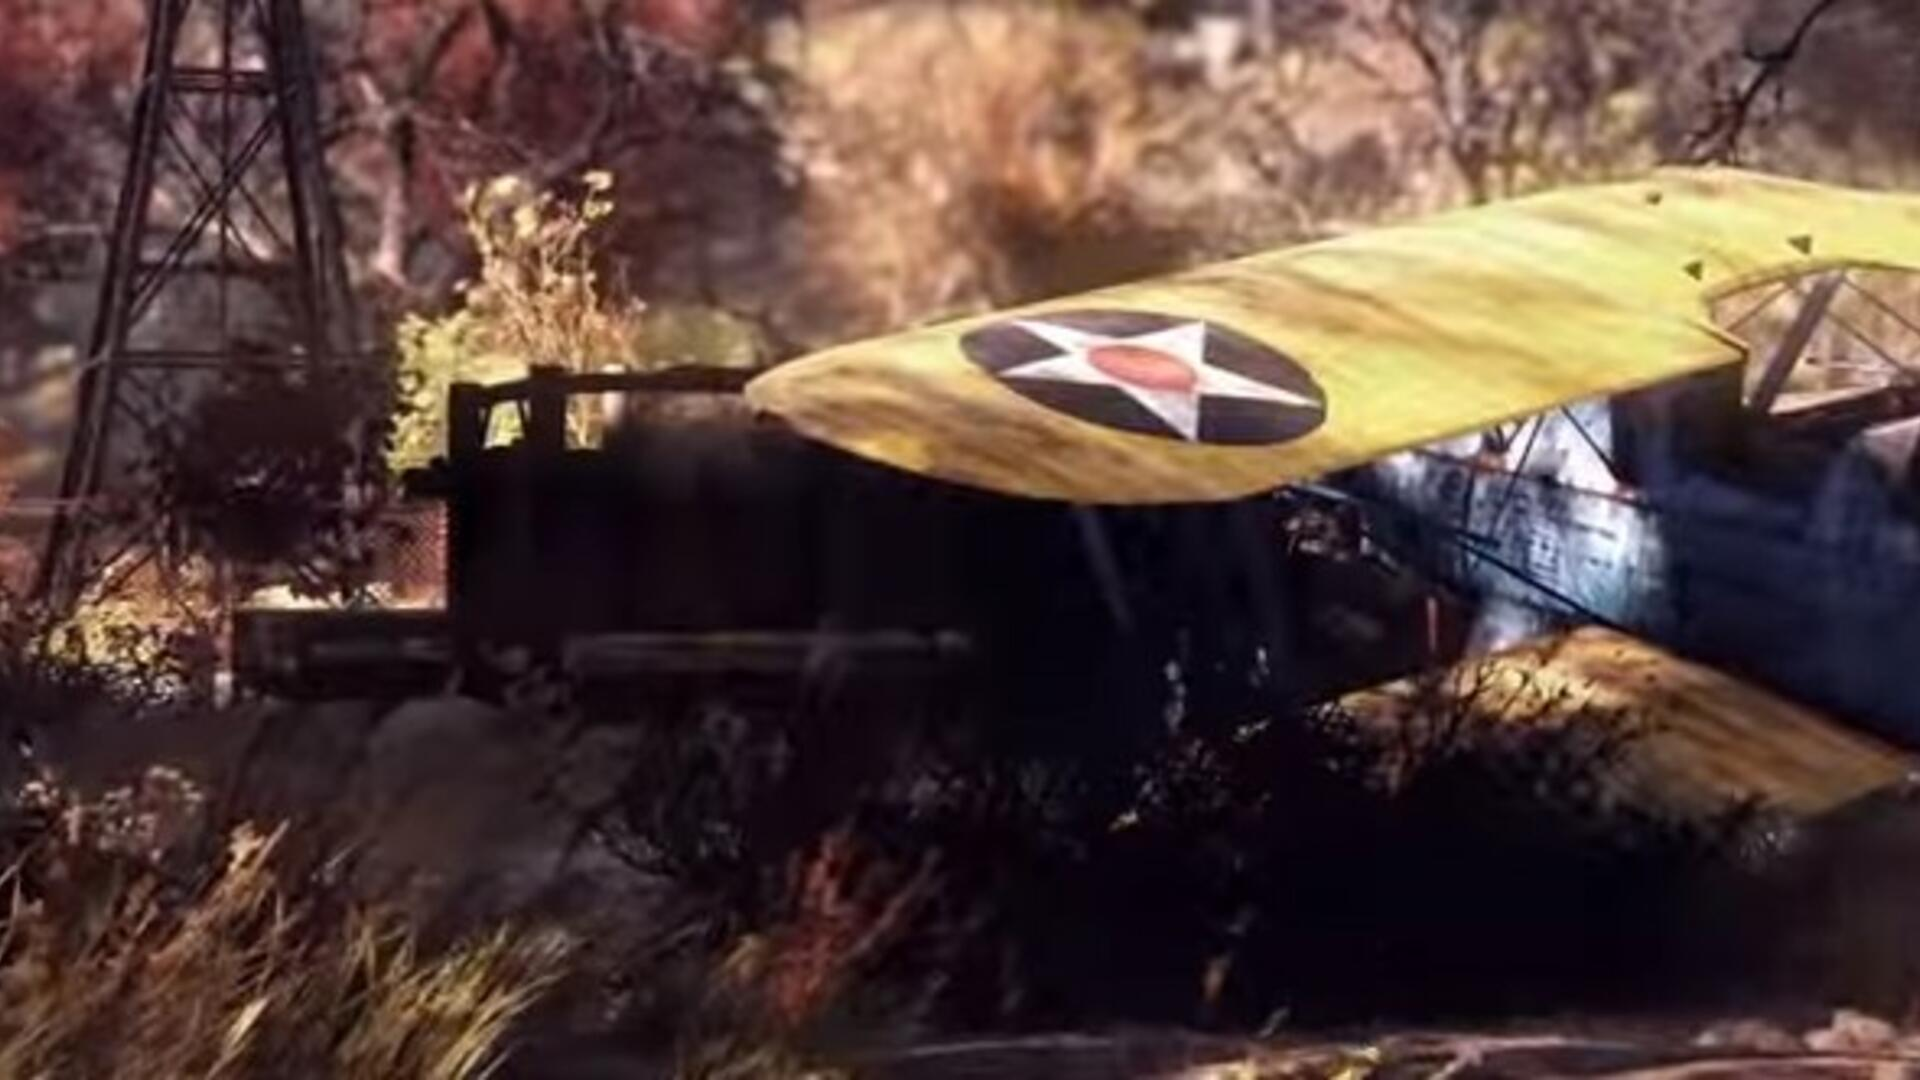 Fallout 76 is Impossible to Port to Switch, Bethesda Says